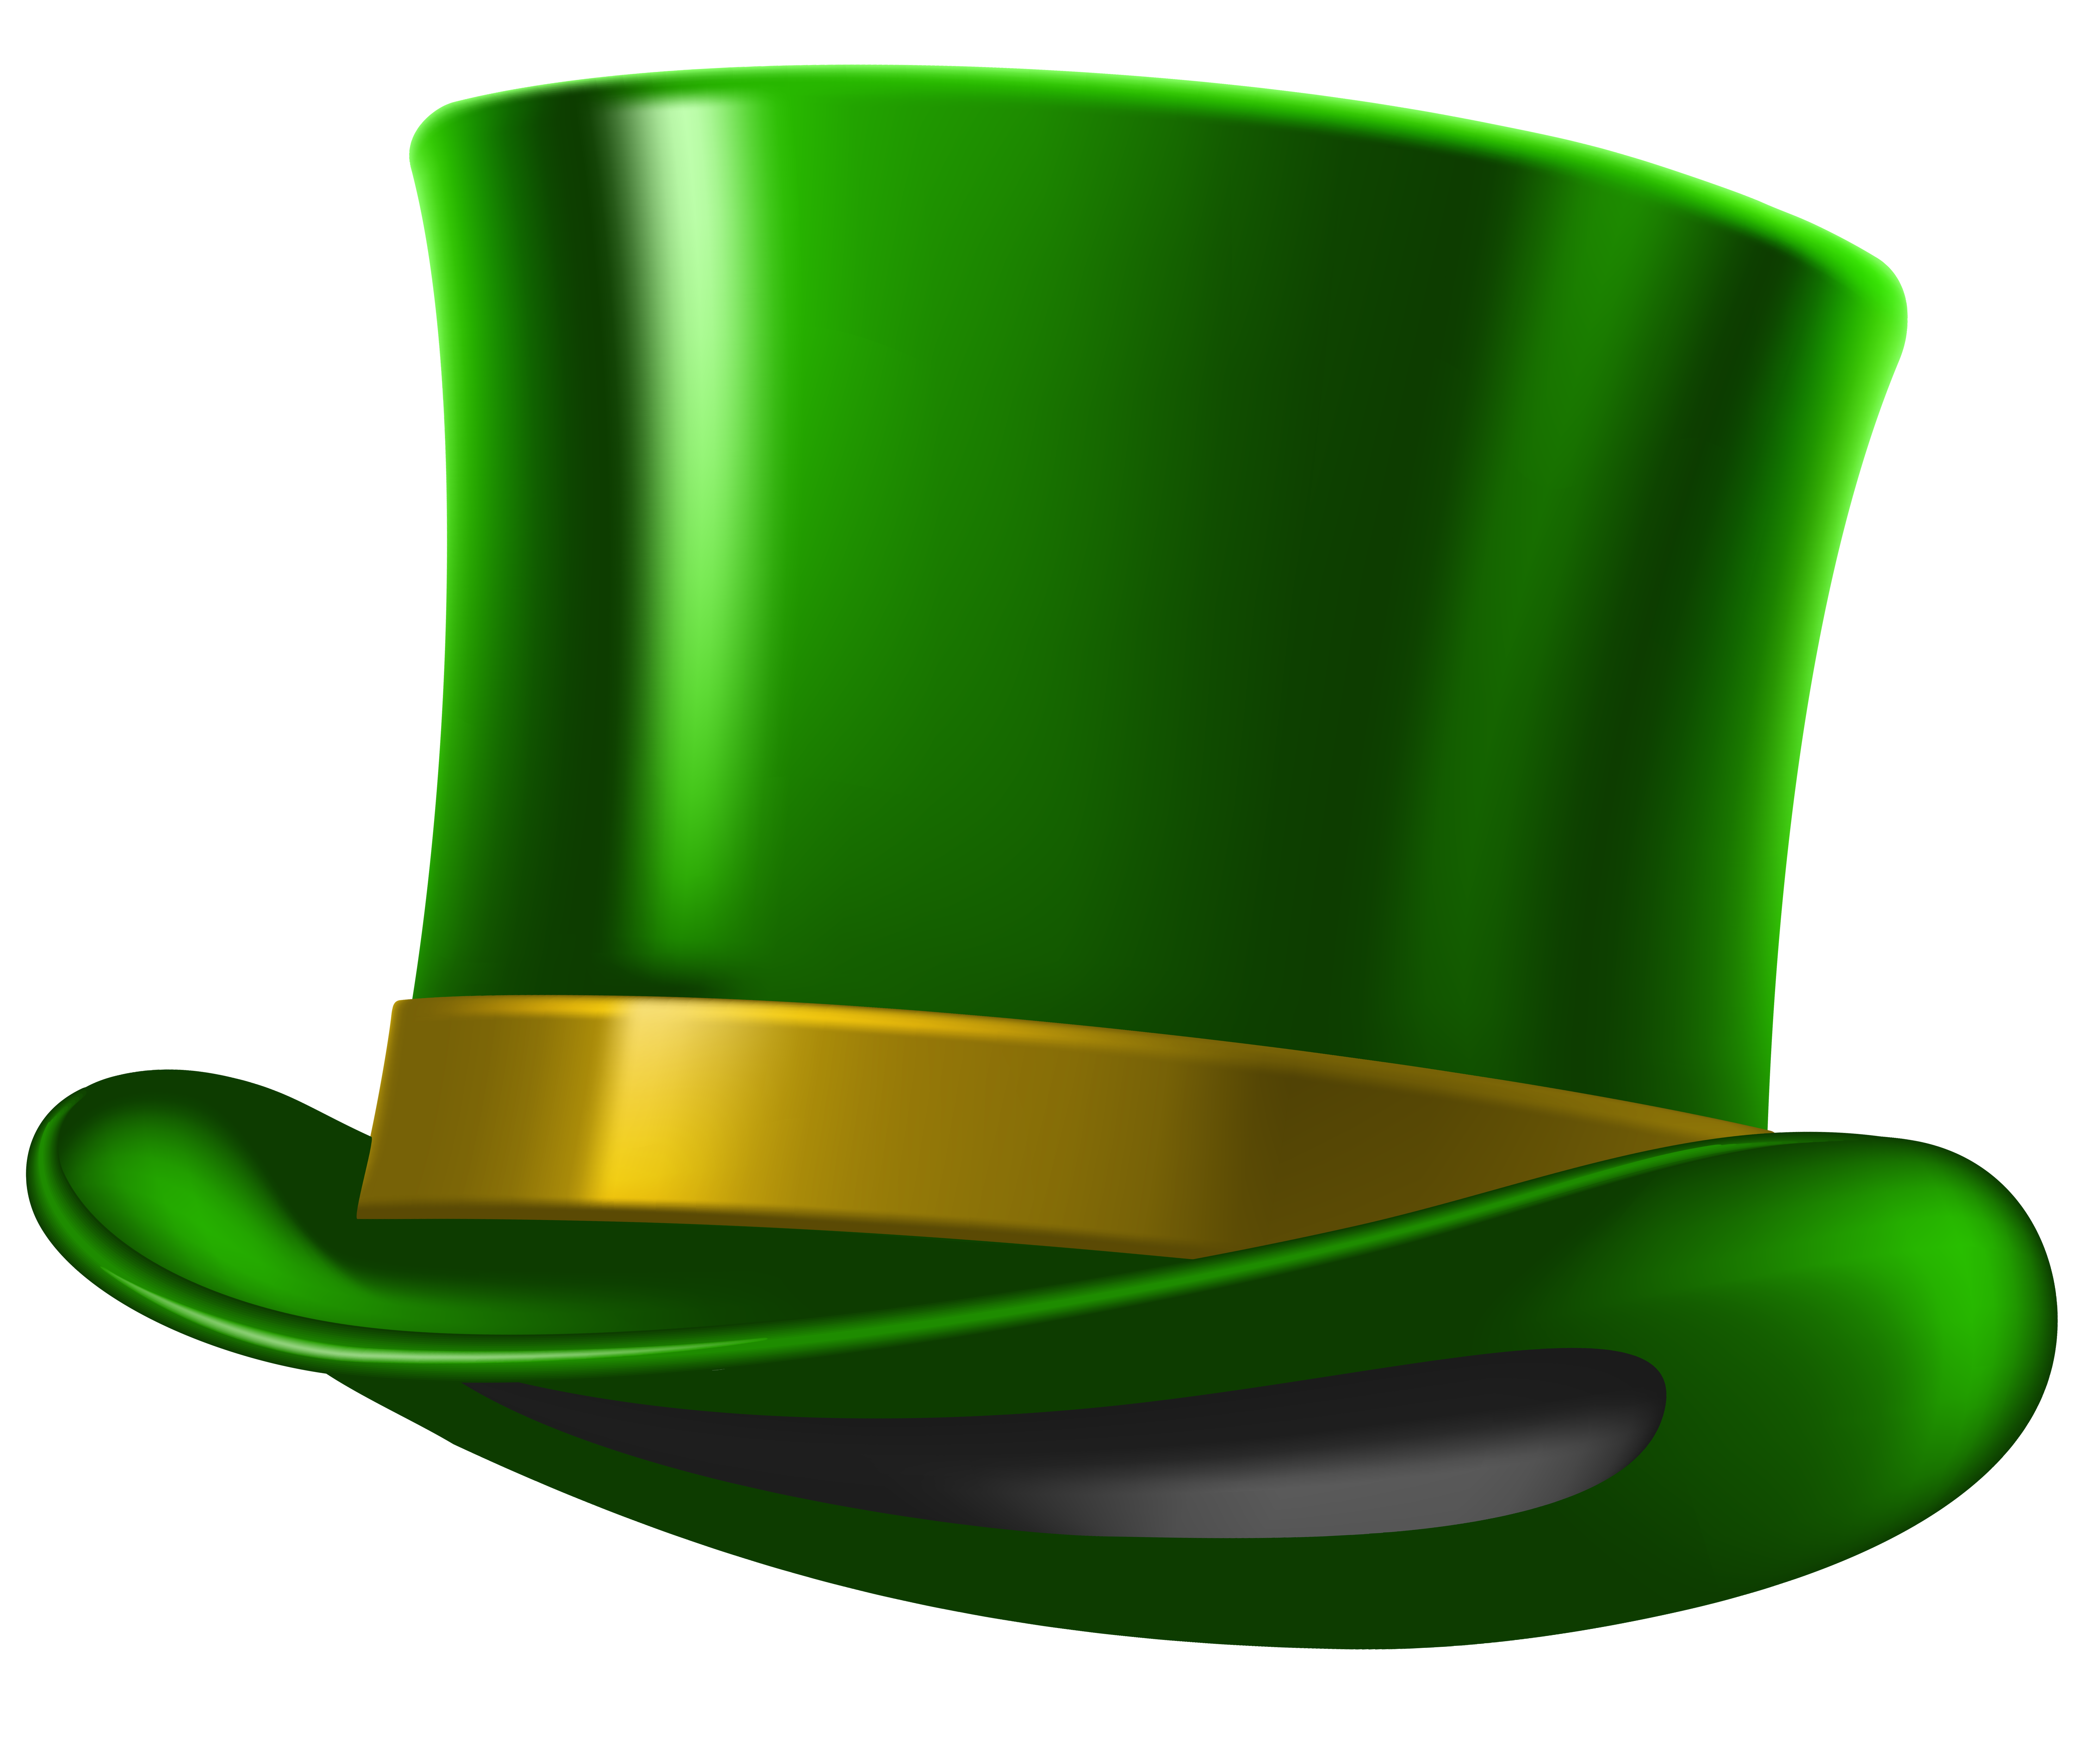 Green St Patricks Day Hat PNG Clipart Image.